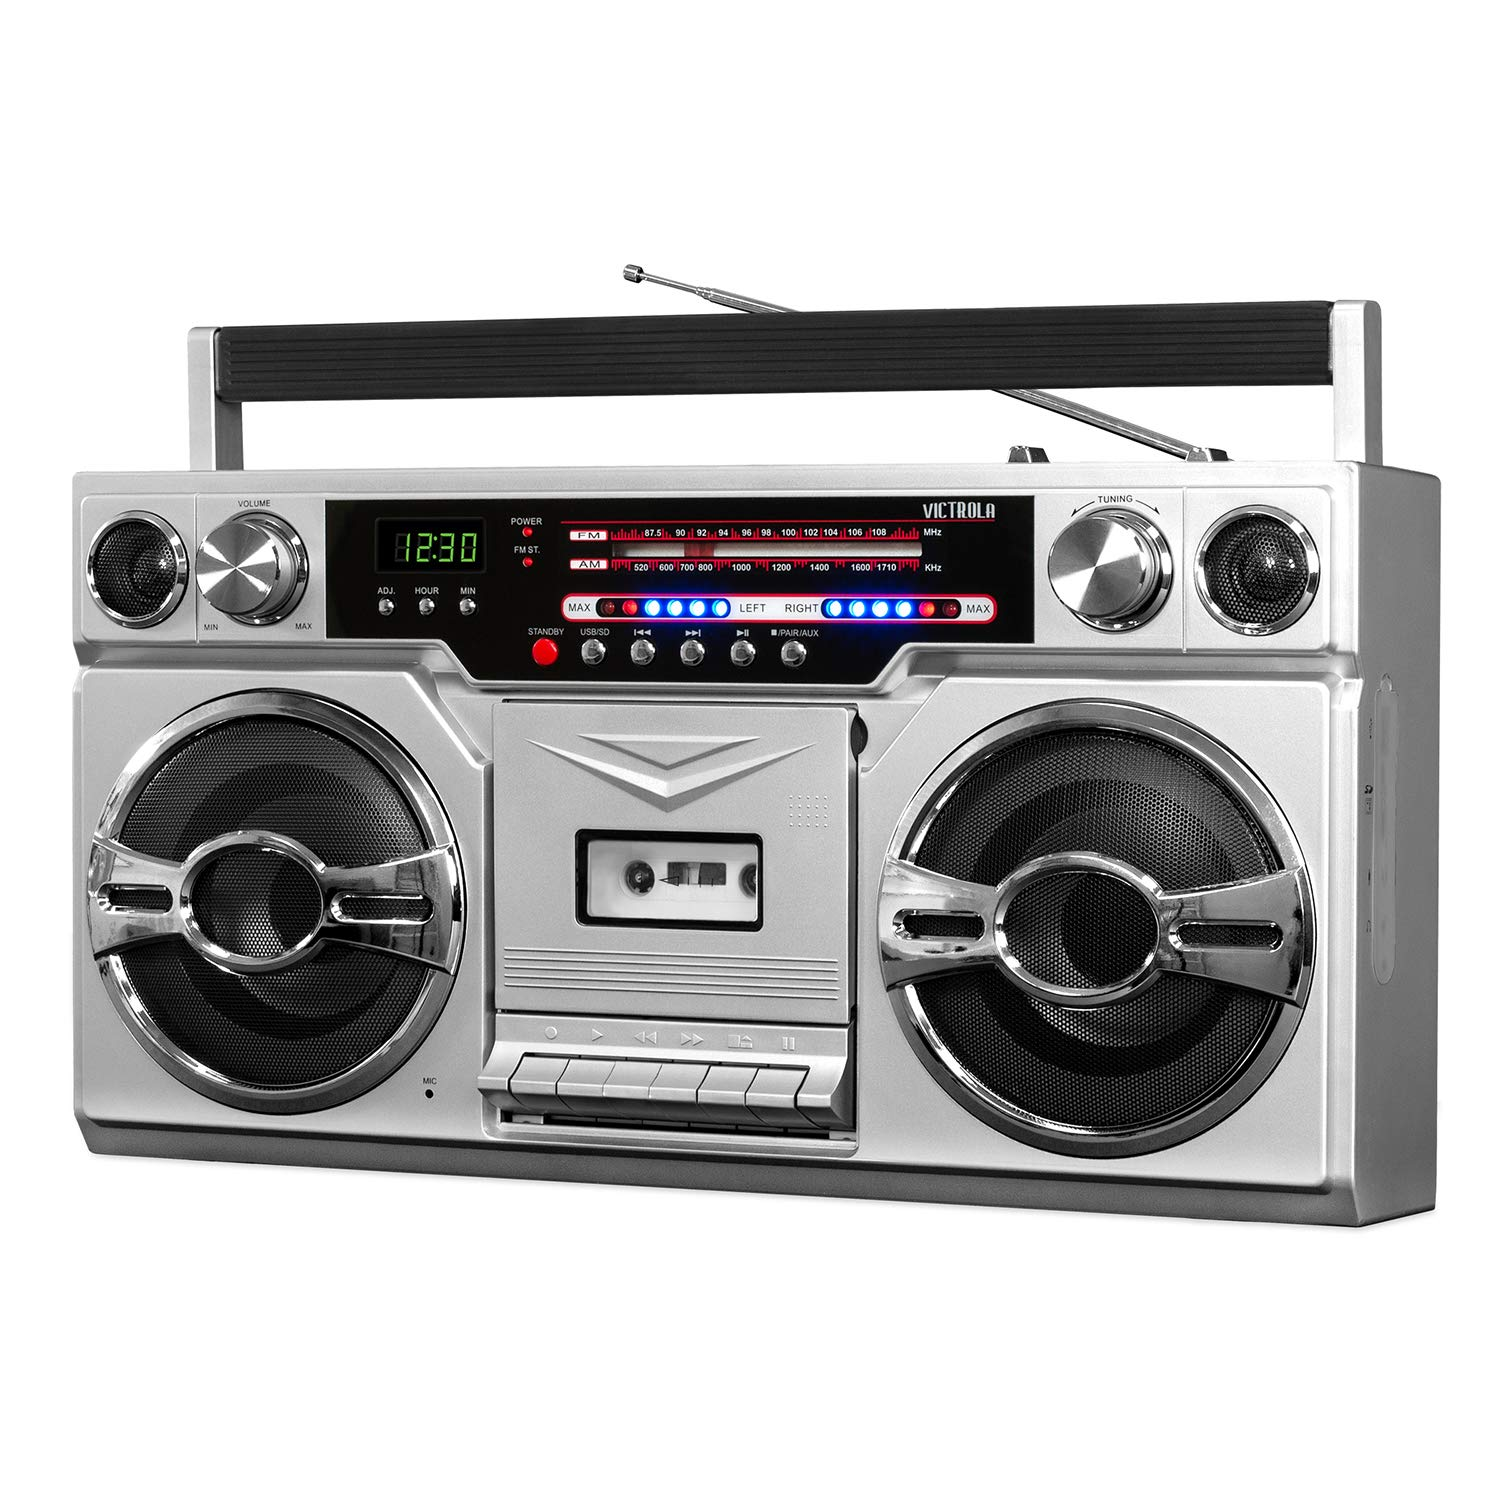 Victrola VBB-10-SLV 1980's Bluetooth Boombox with Cassette Player and AM/FM Radio, Silver by Victrola